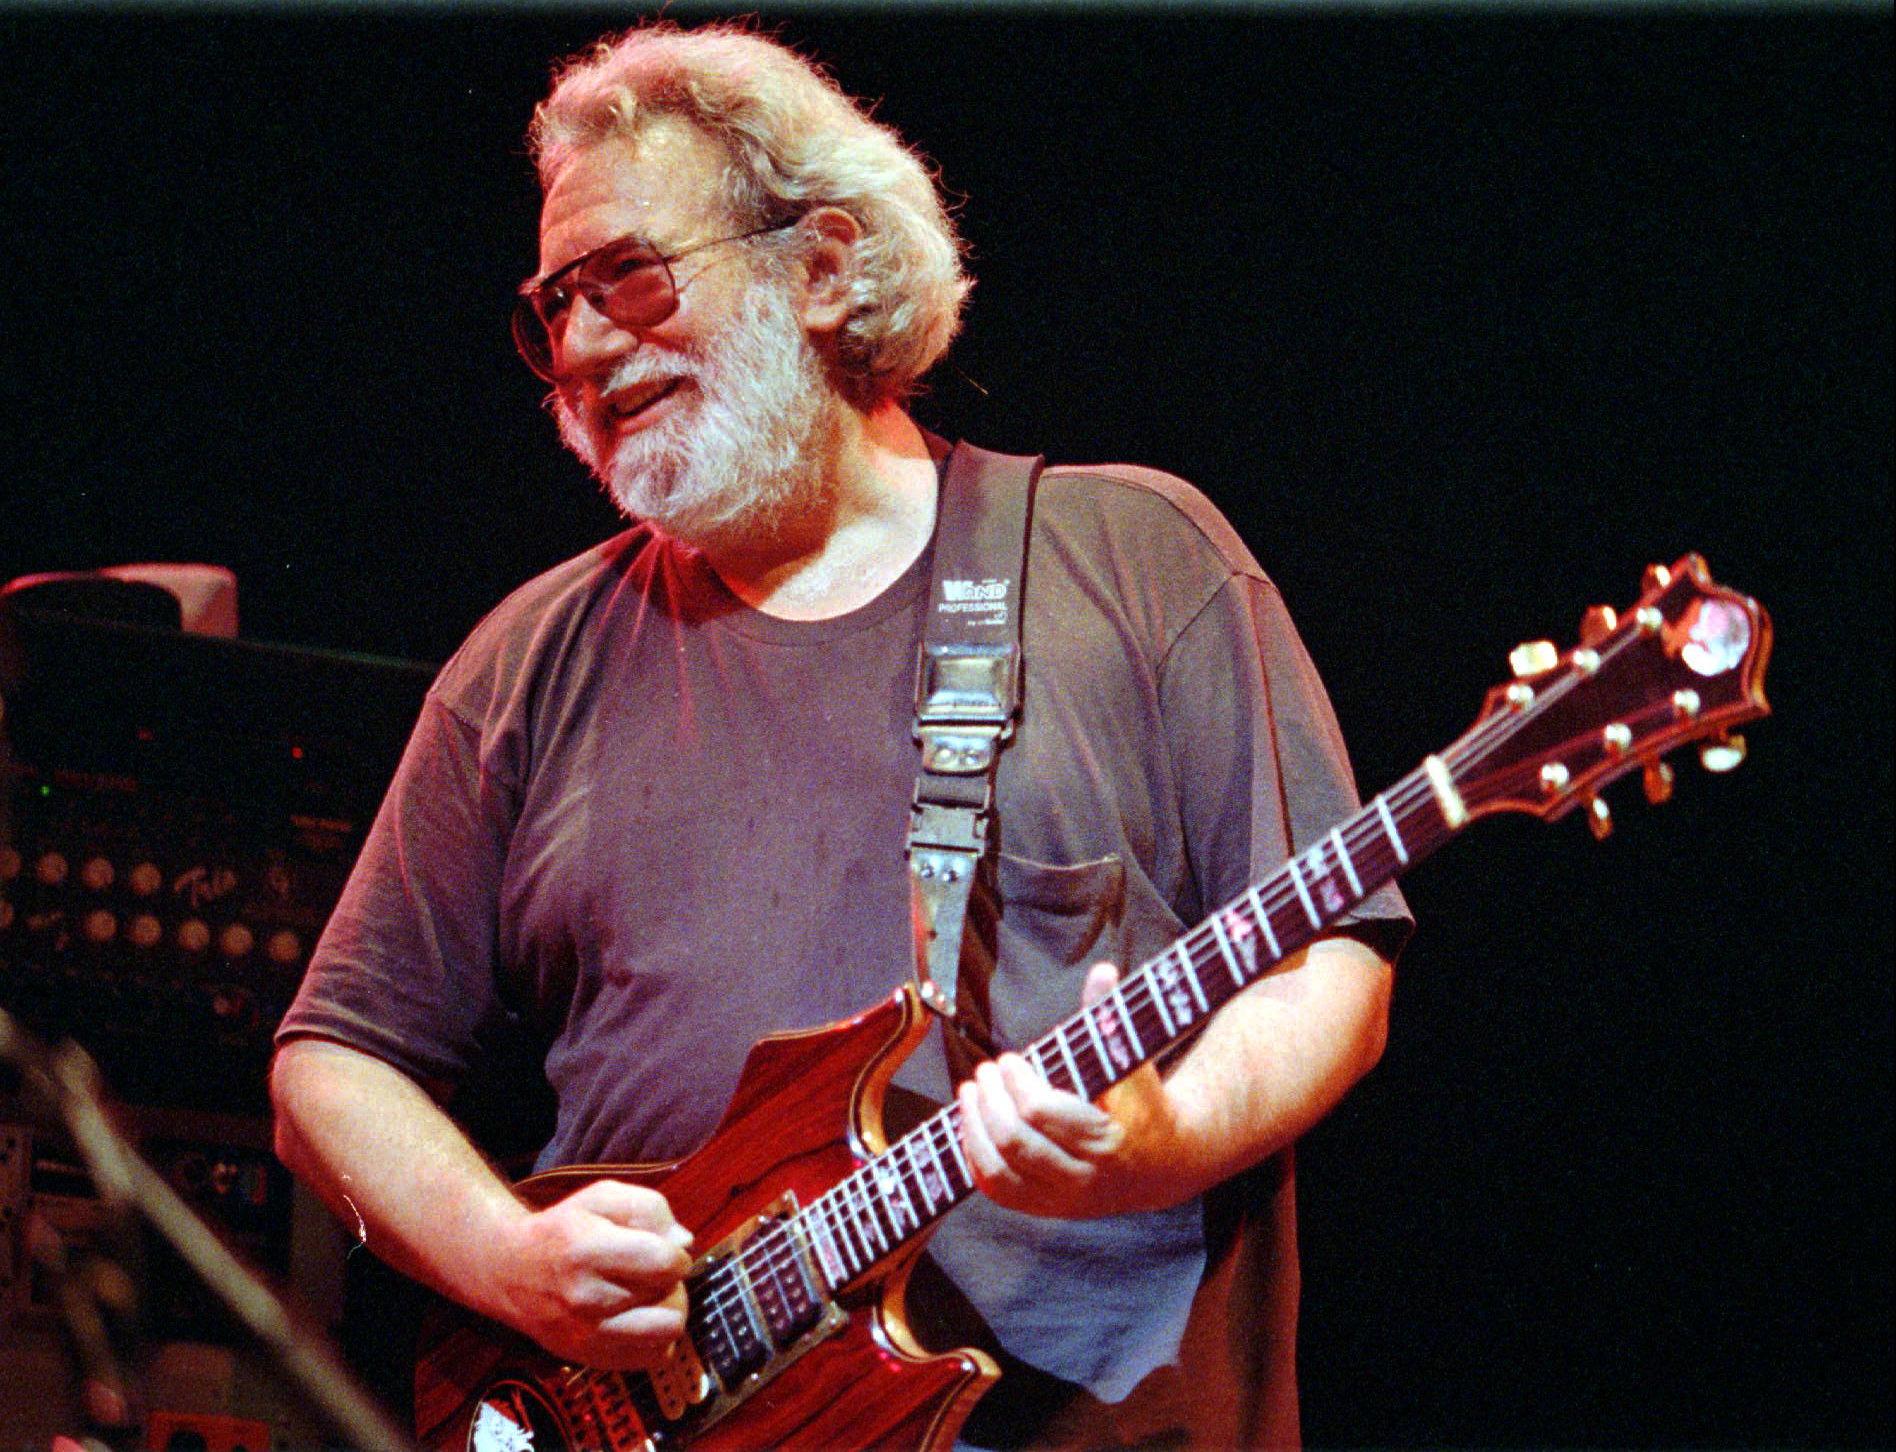 Make Jerry proud: Learn to play guitar the smart way